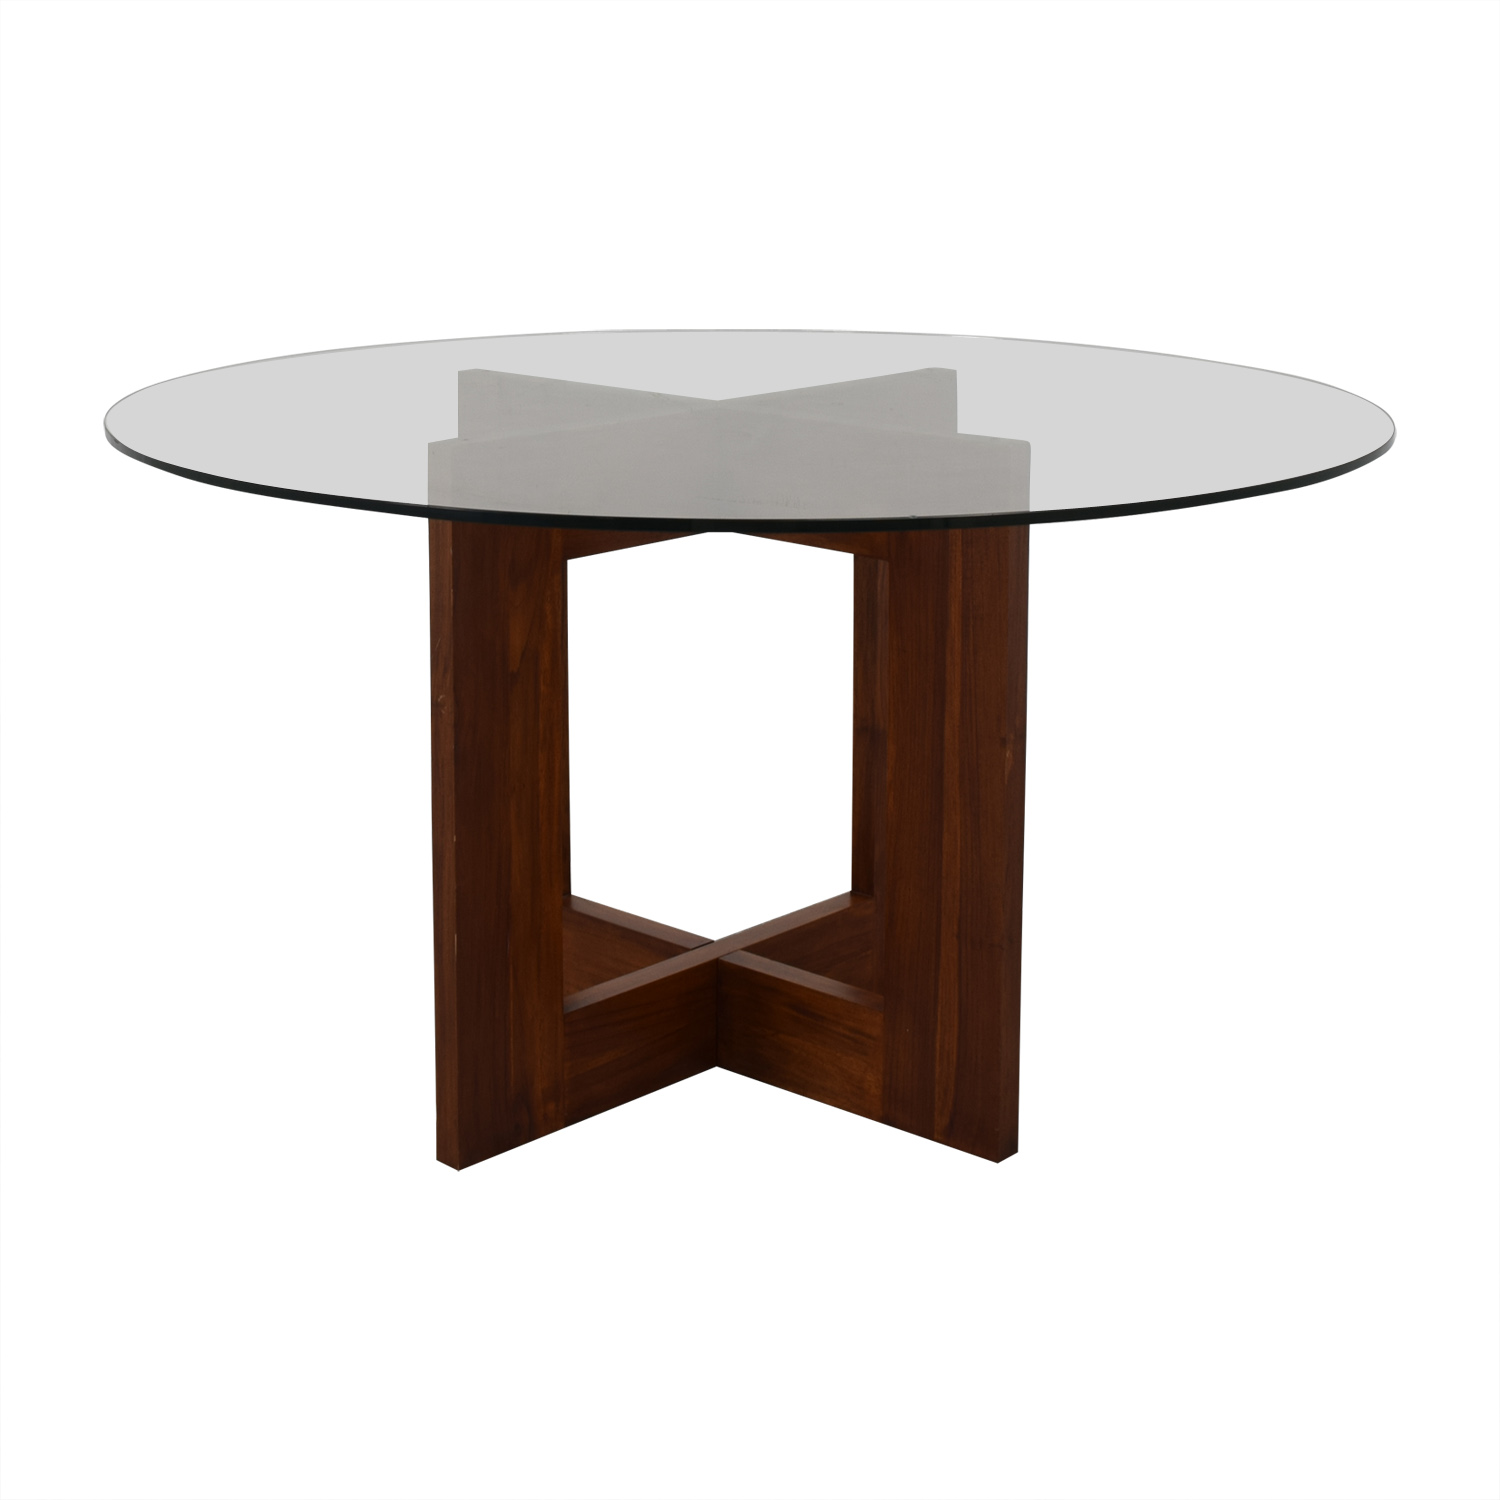 shop Crate & Barrel Round Glass Table Crate & Barrel Dinner Tables